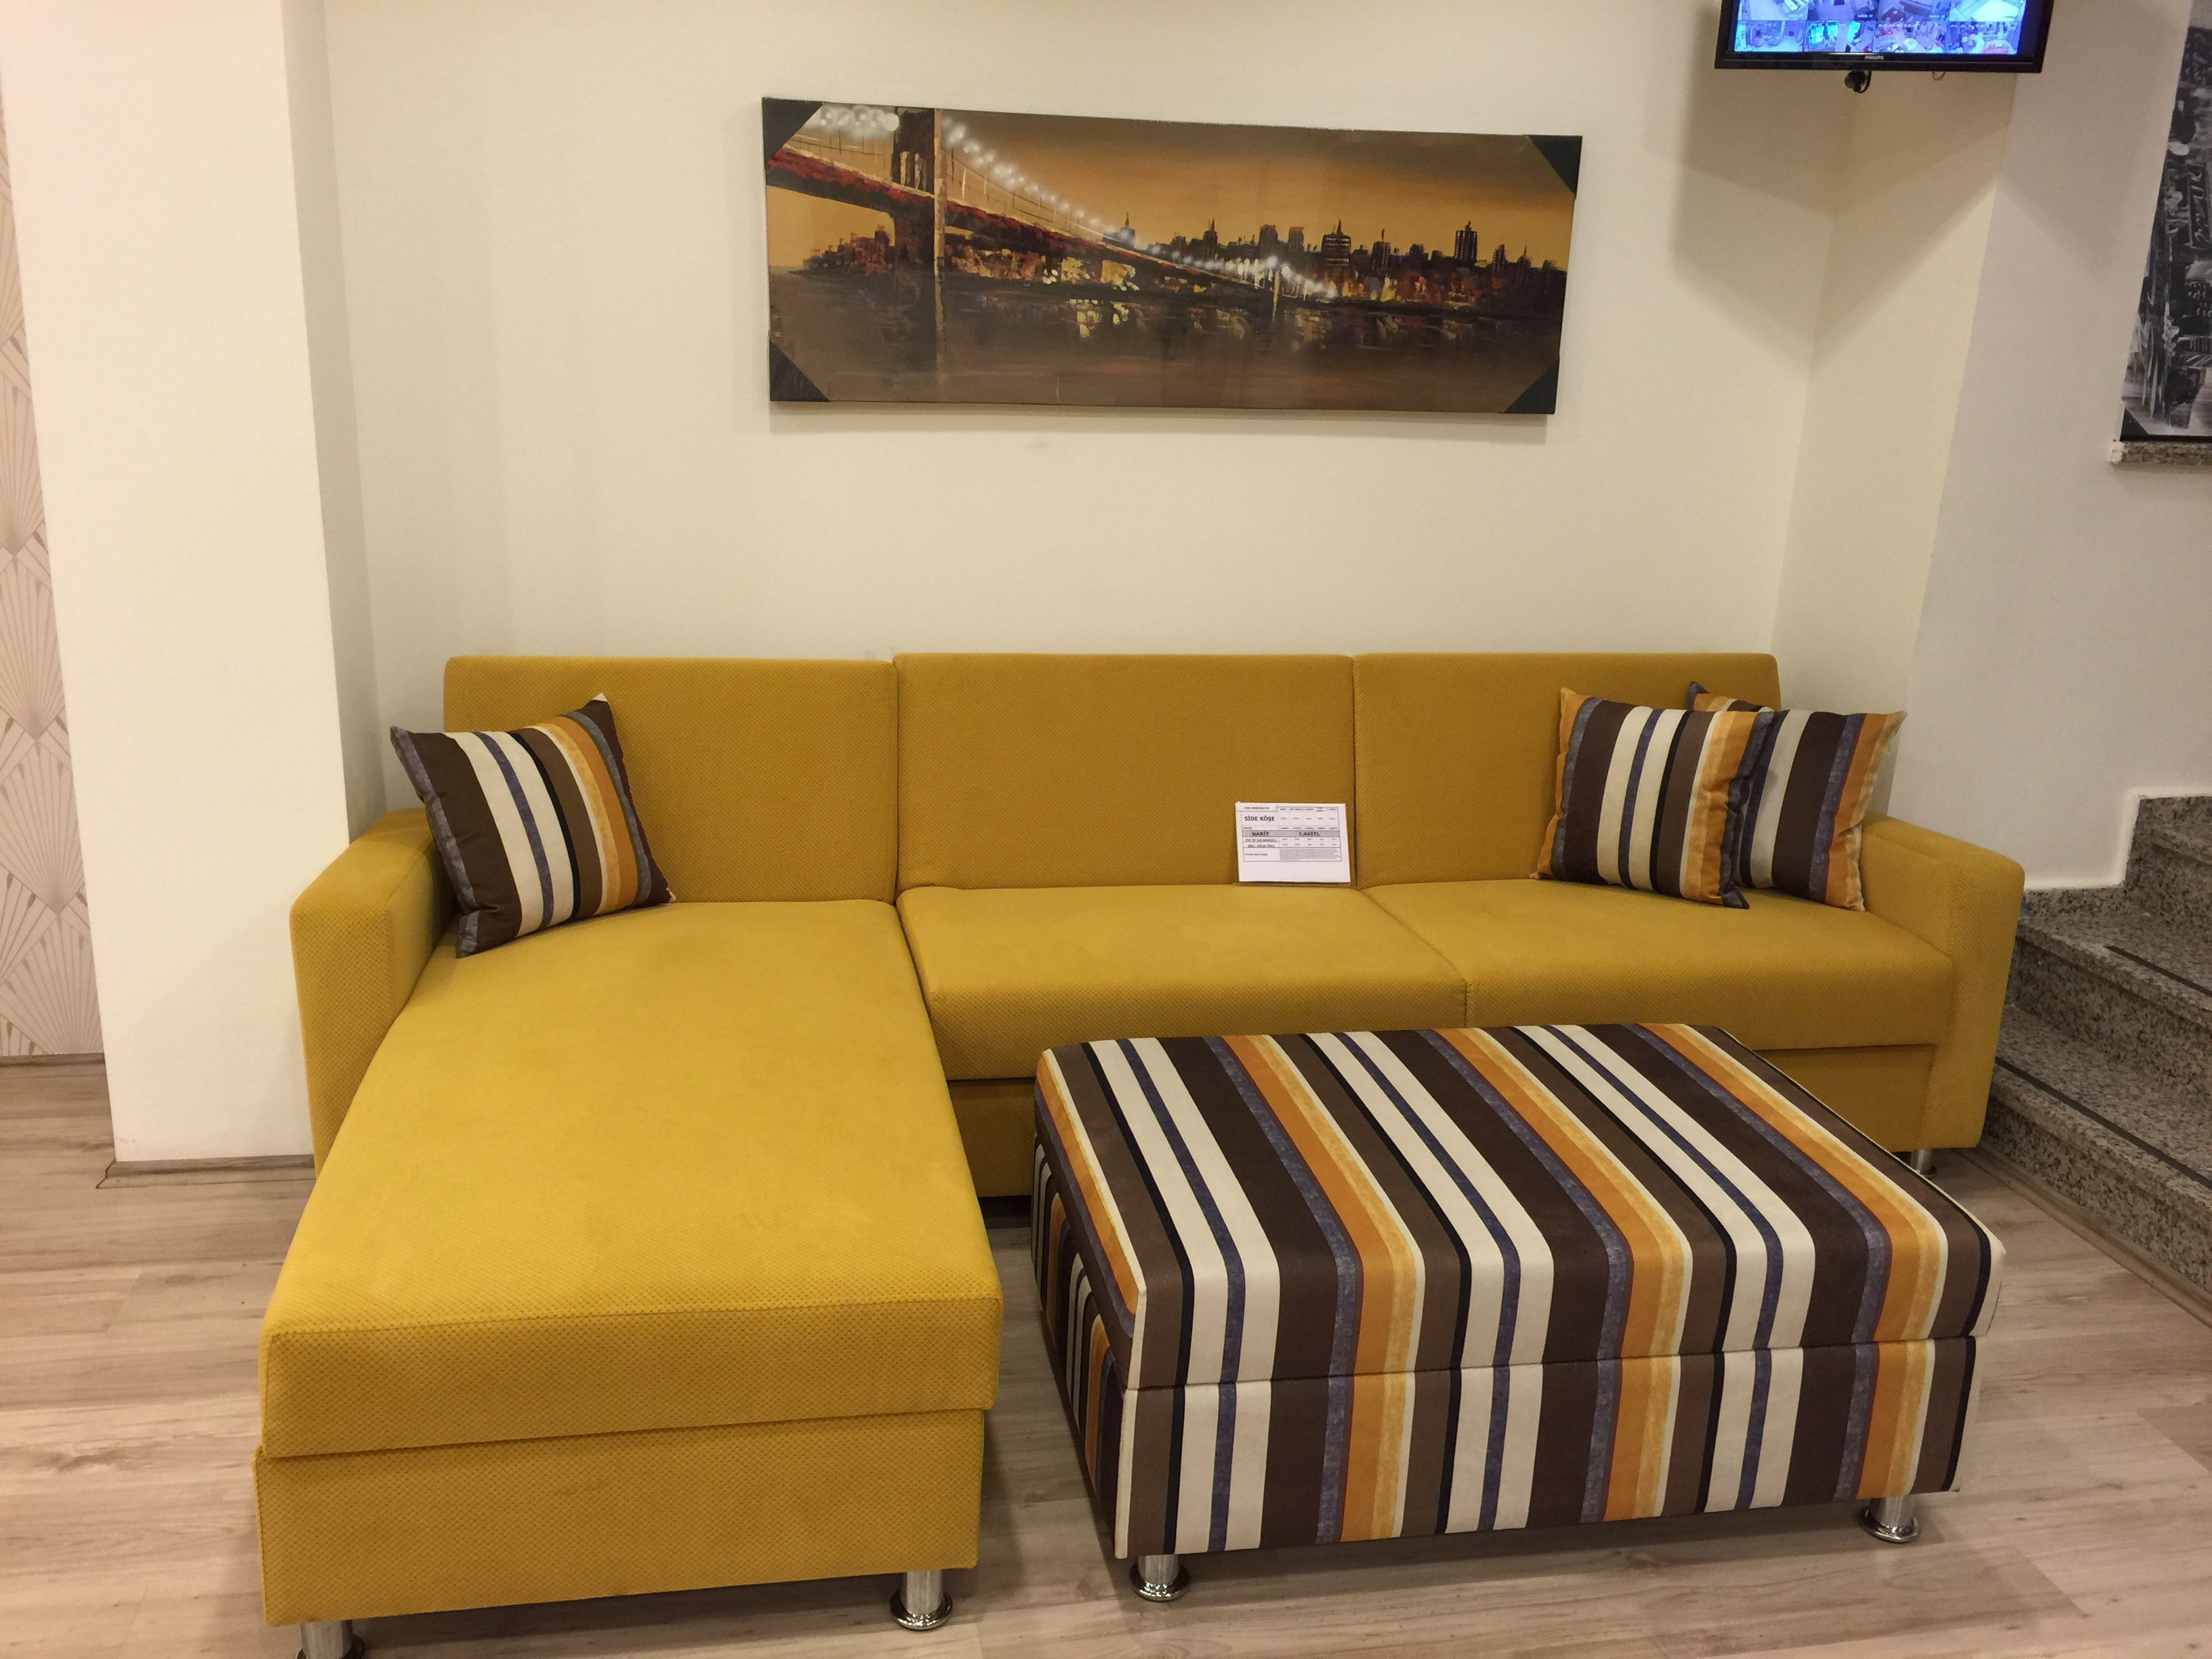 side kose takimi 1470 tl home decor sectional couch furniture